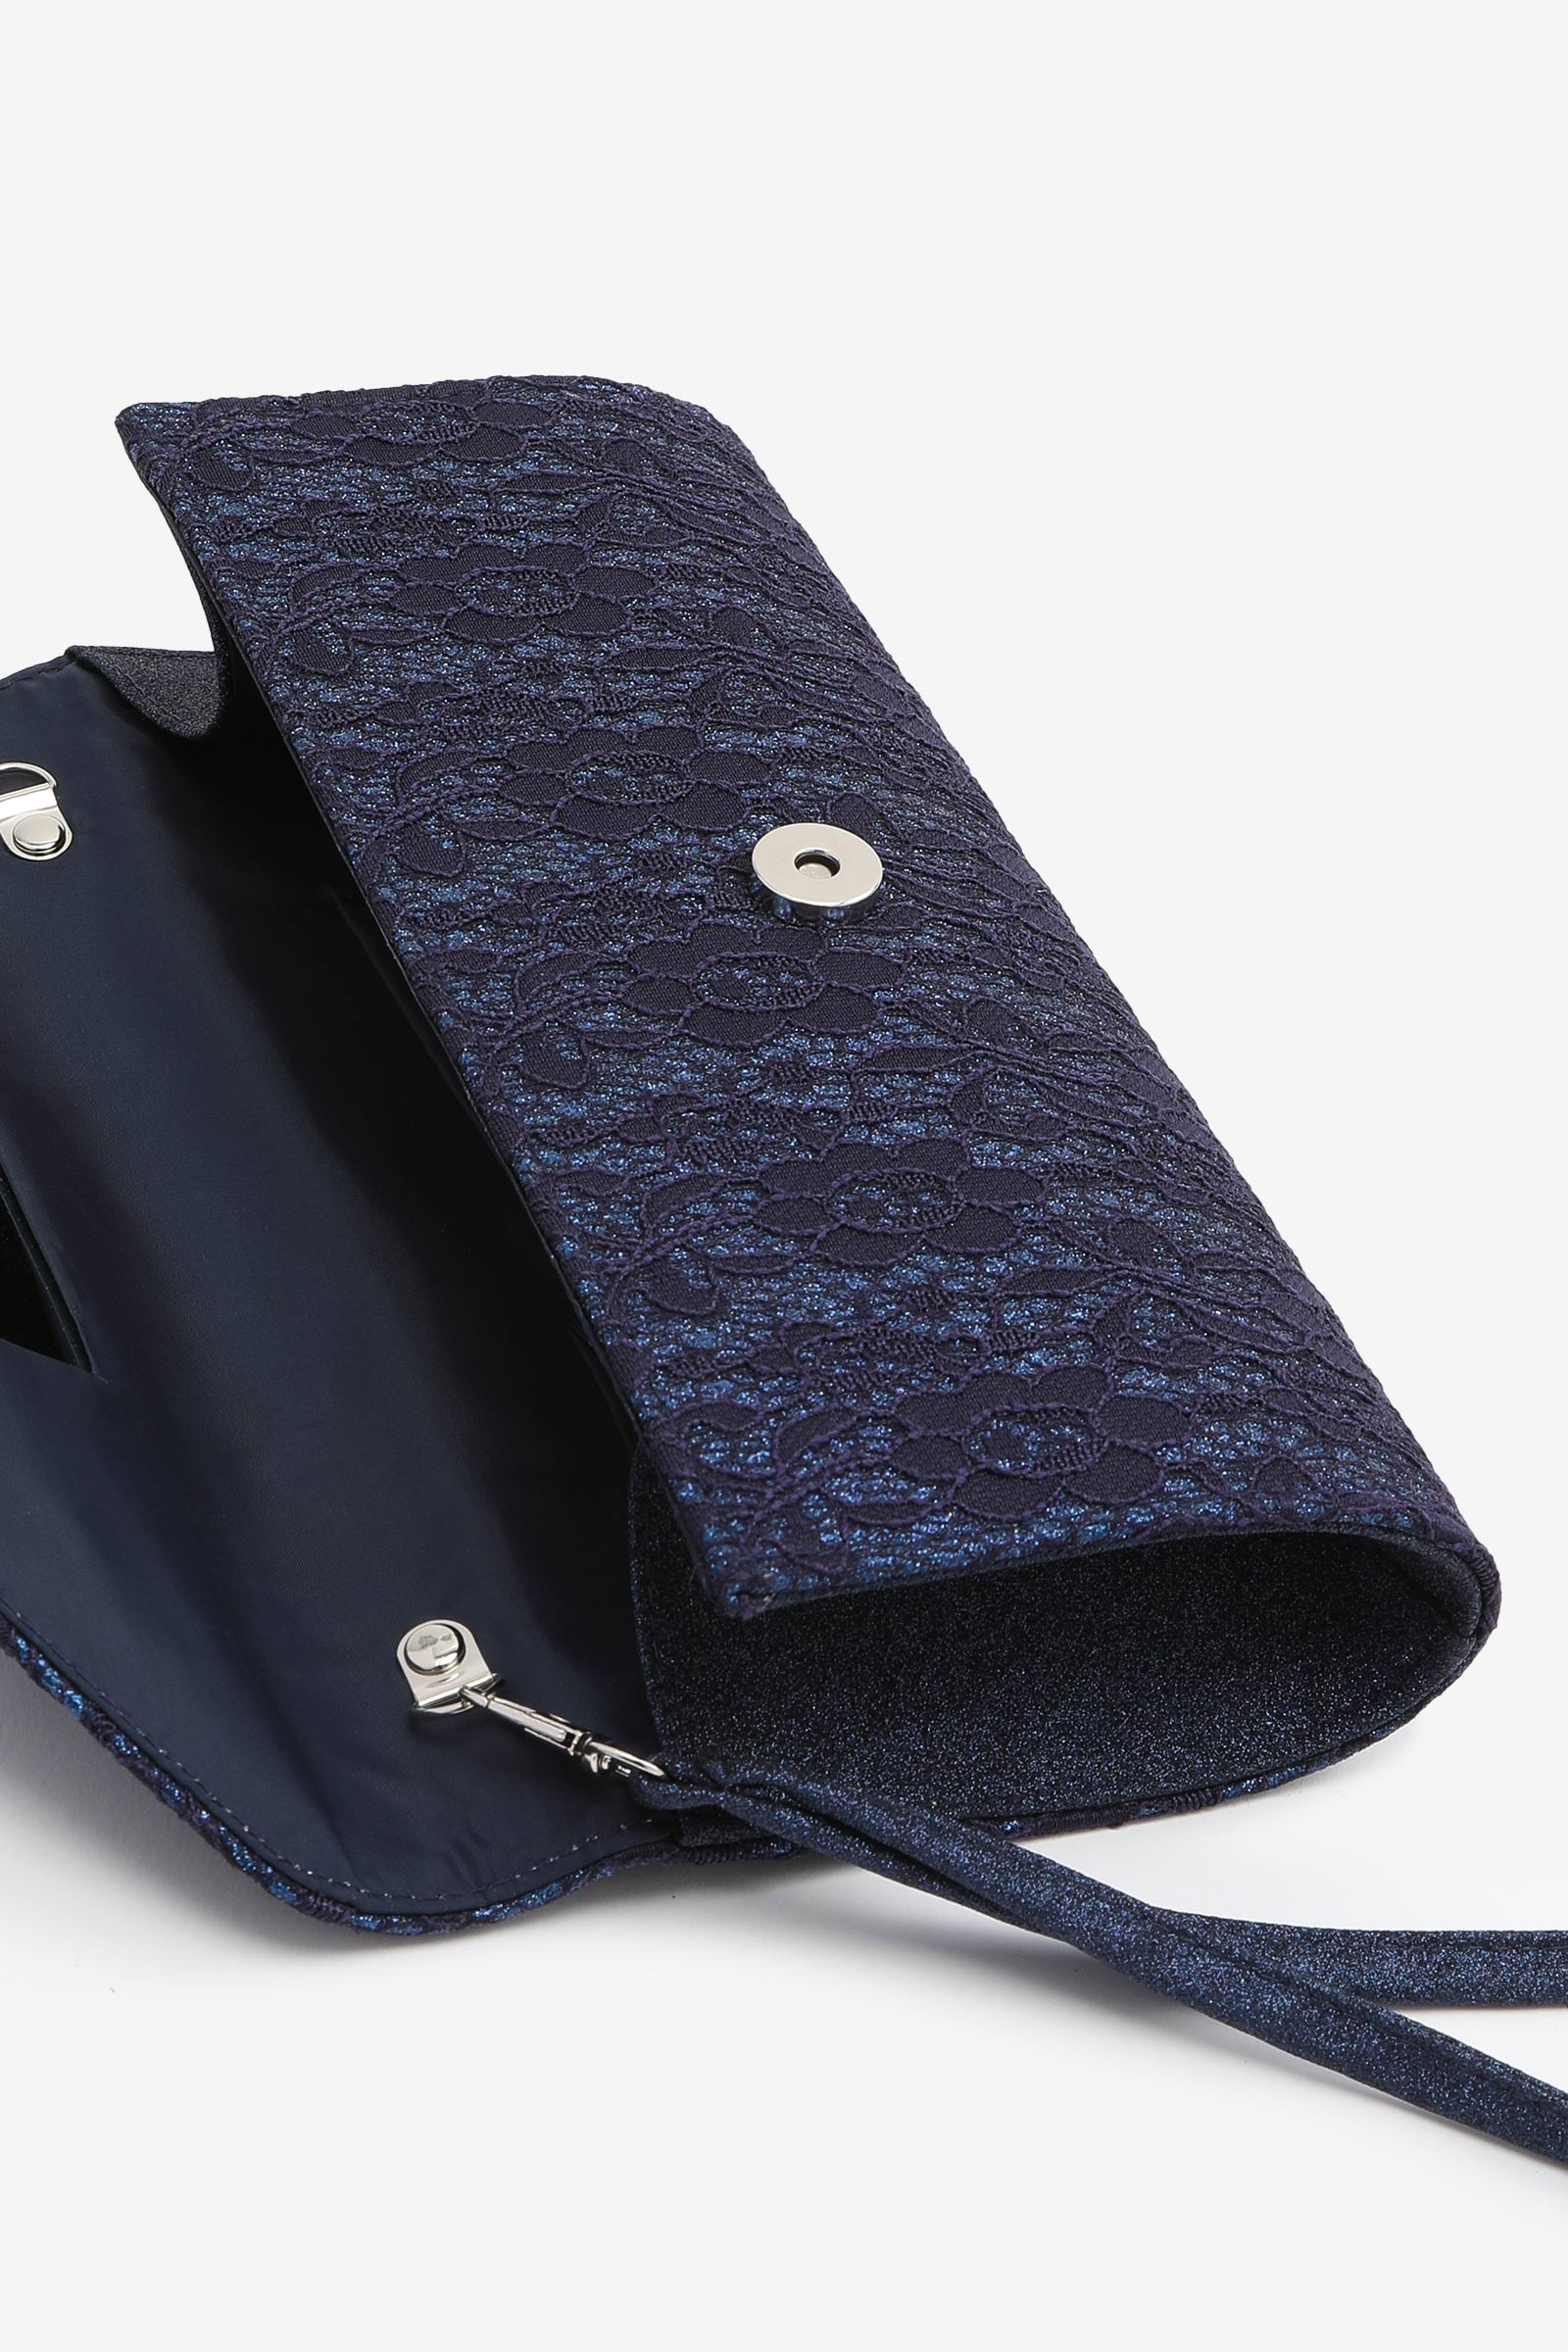 Occasion Lace Evening Clutch